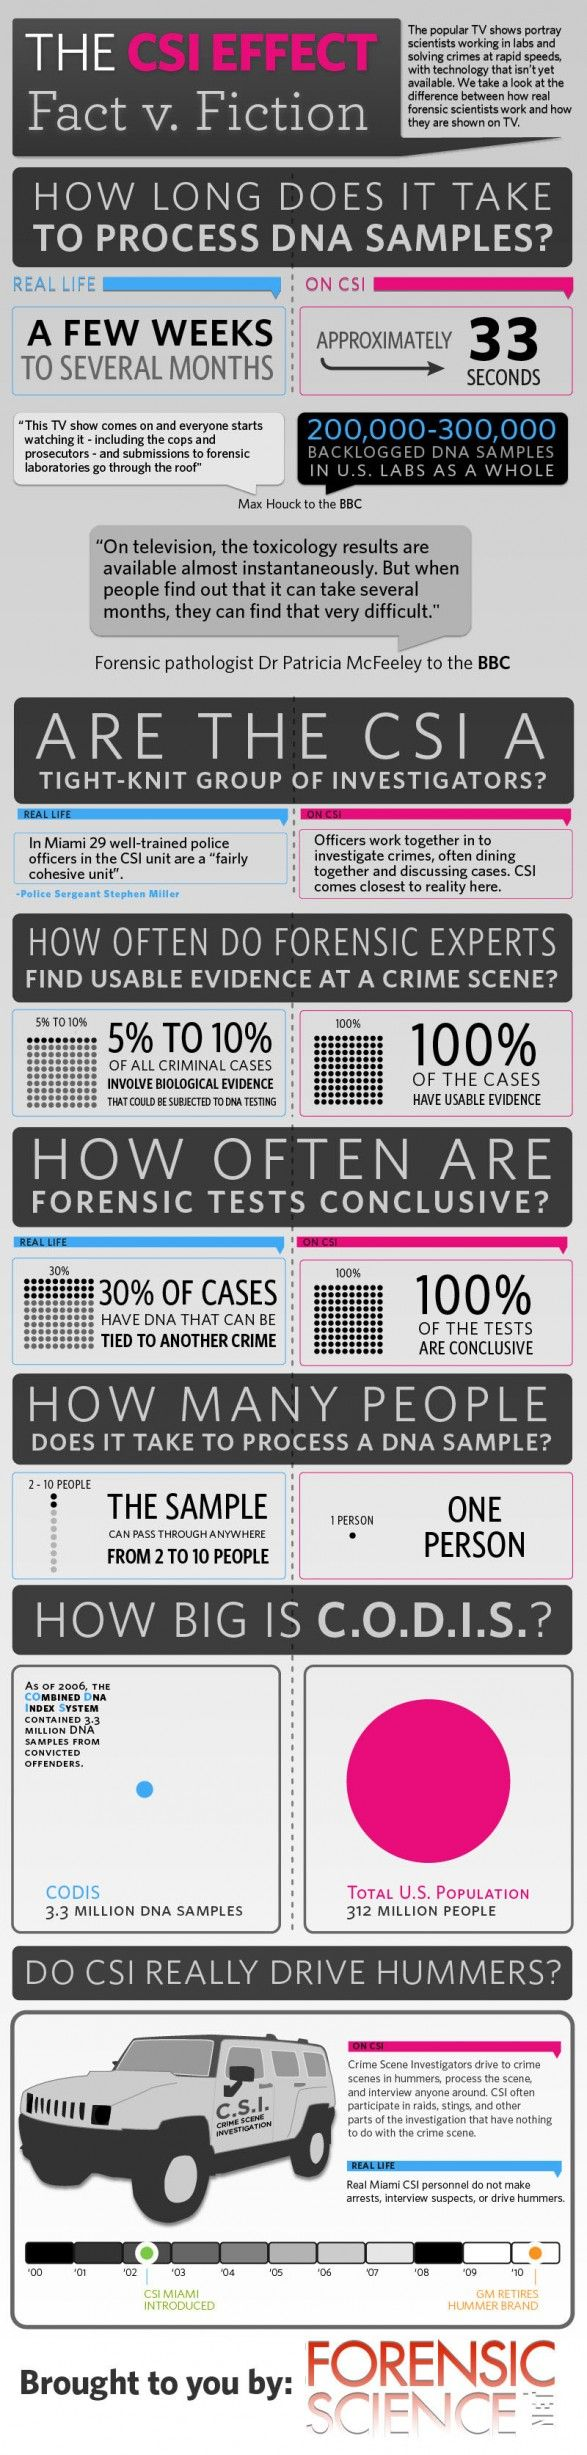 Some of the most popular shows on television revolve around scientists and investigators trying to hunt down criminals. Using forensic evidence, they assembled pieces of the puzzle until they uncover the bad guy. But how real are shows like CSI? This infographic gets to the bottom and separates fact from fiction.